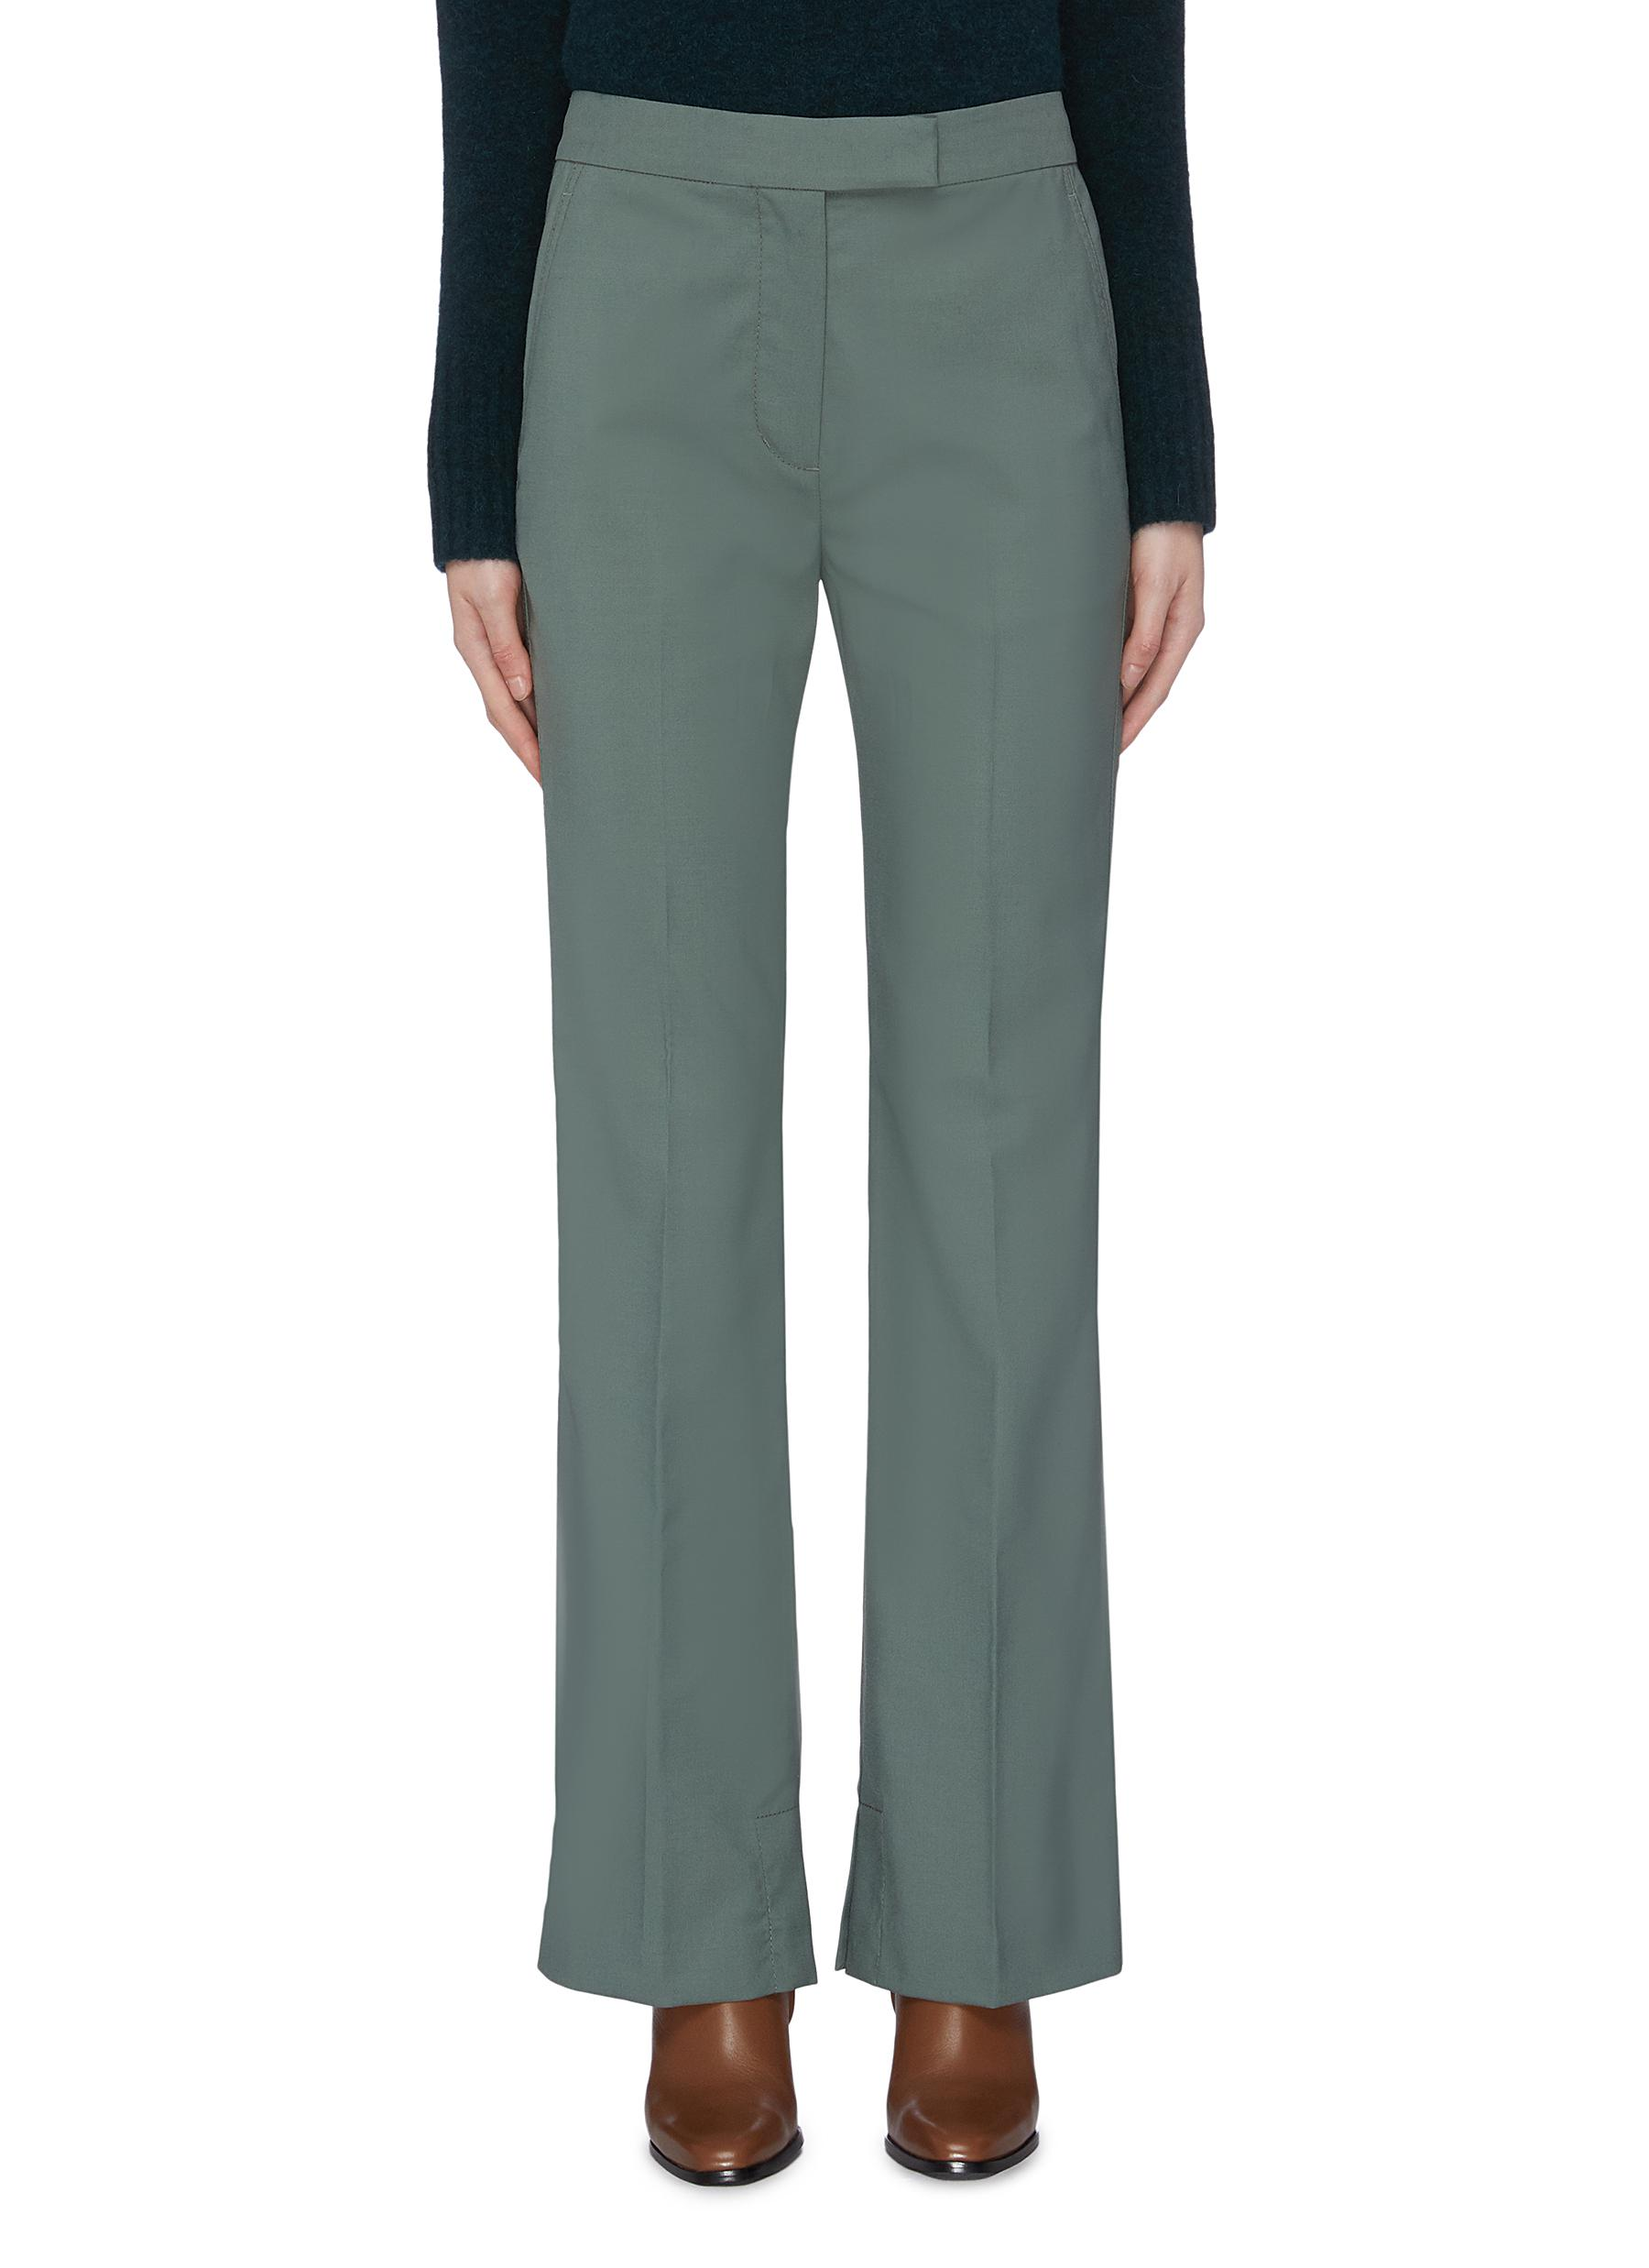 Suiting pants by 3.1 Phillip Lim